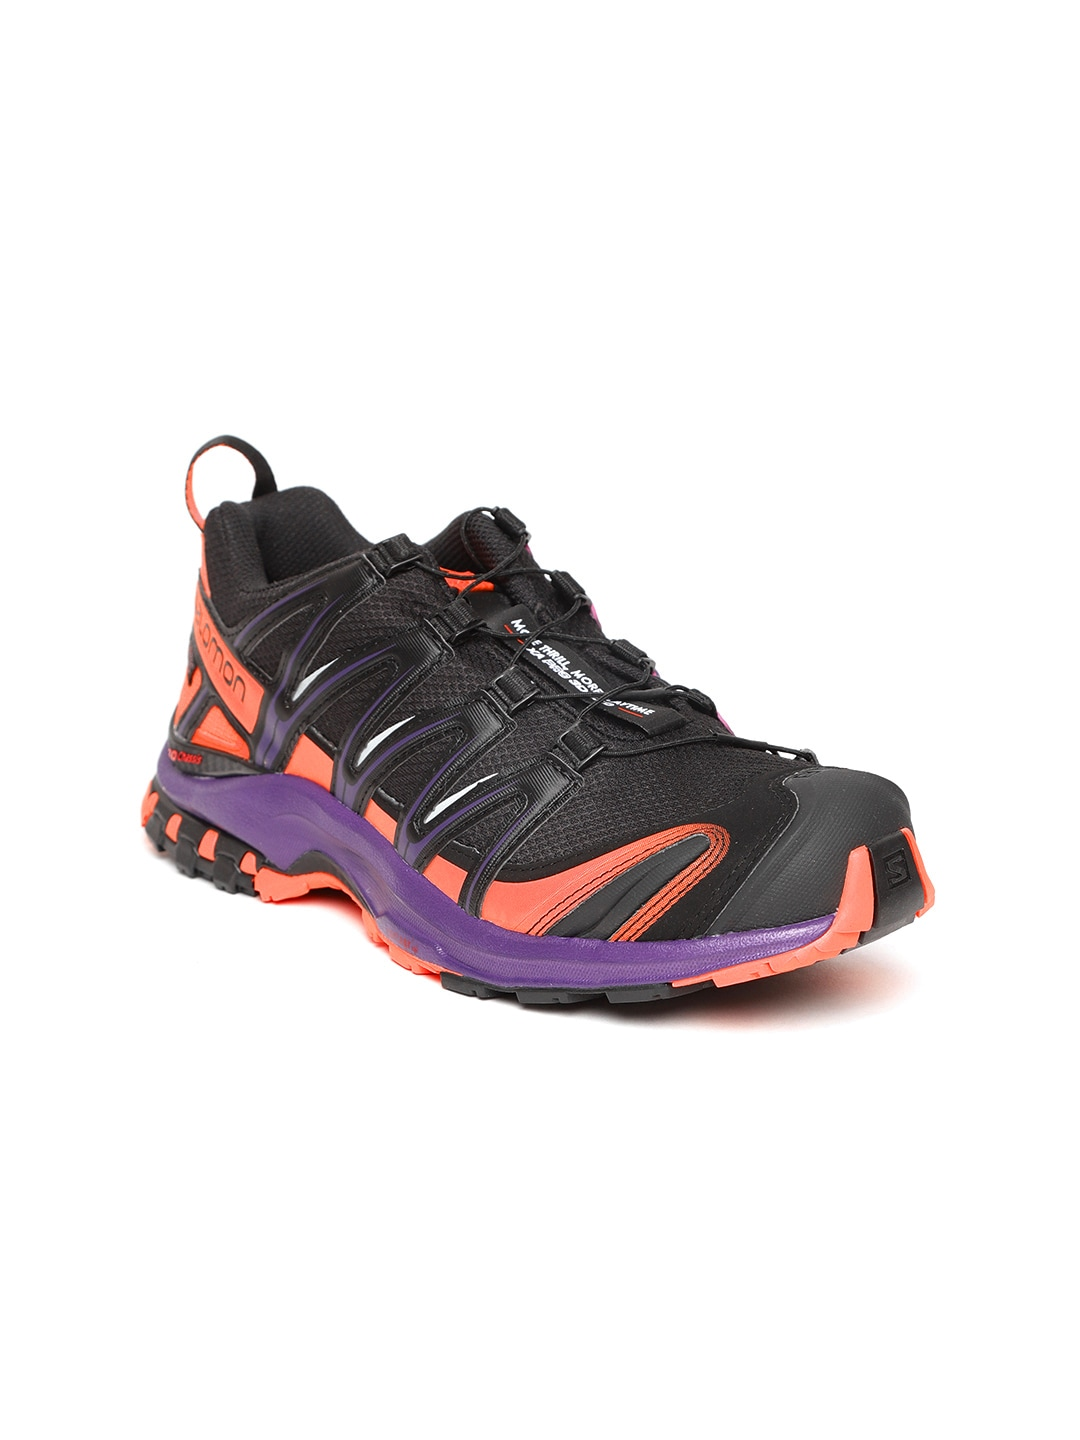 quality design c9e03 0a5a1 Sports Shoes Store Neutralpronation - Buy Sports Shoes Store  Neutralpronation online in India